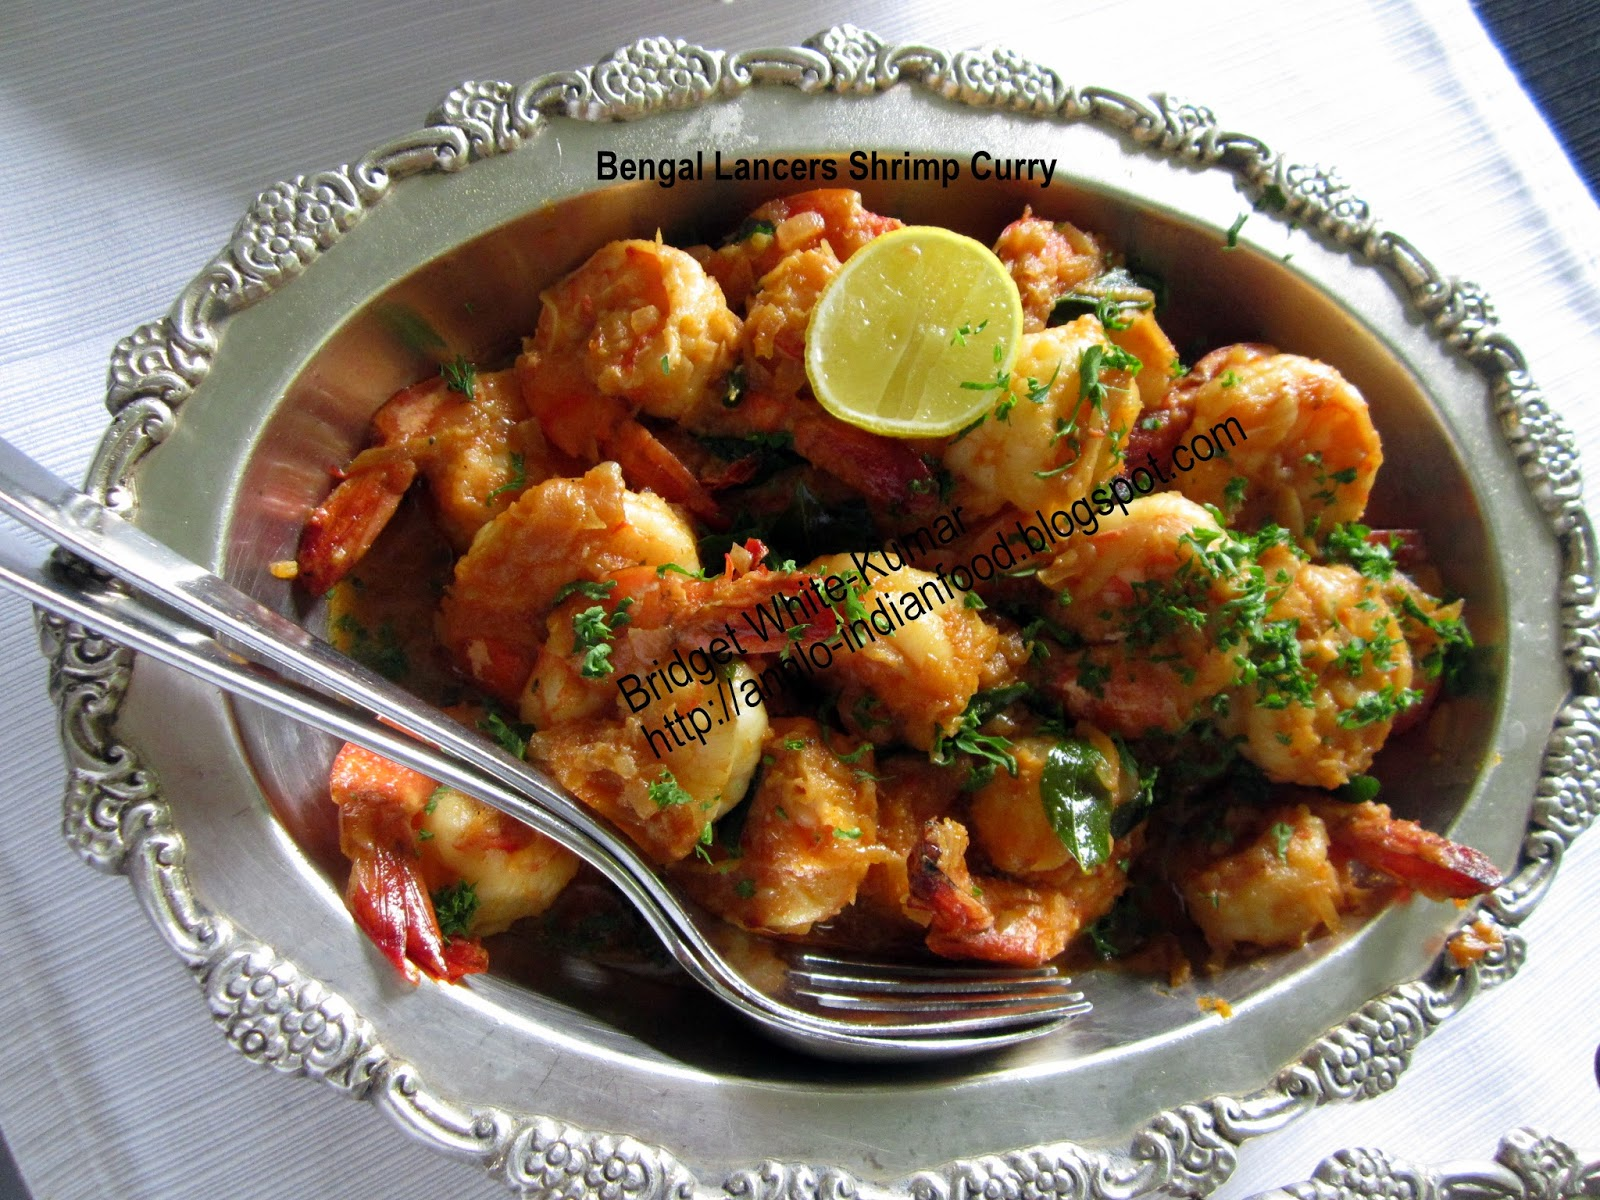 Anglo indian food by bridget white kumar 08 14 14 for Anglo indian cuisine